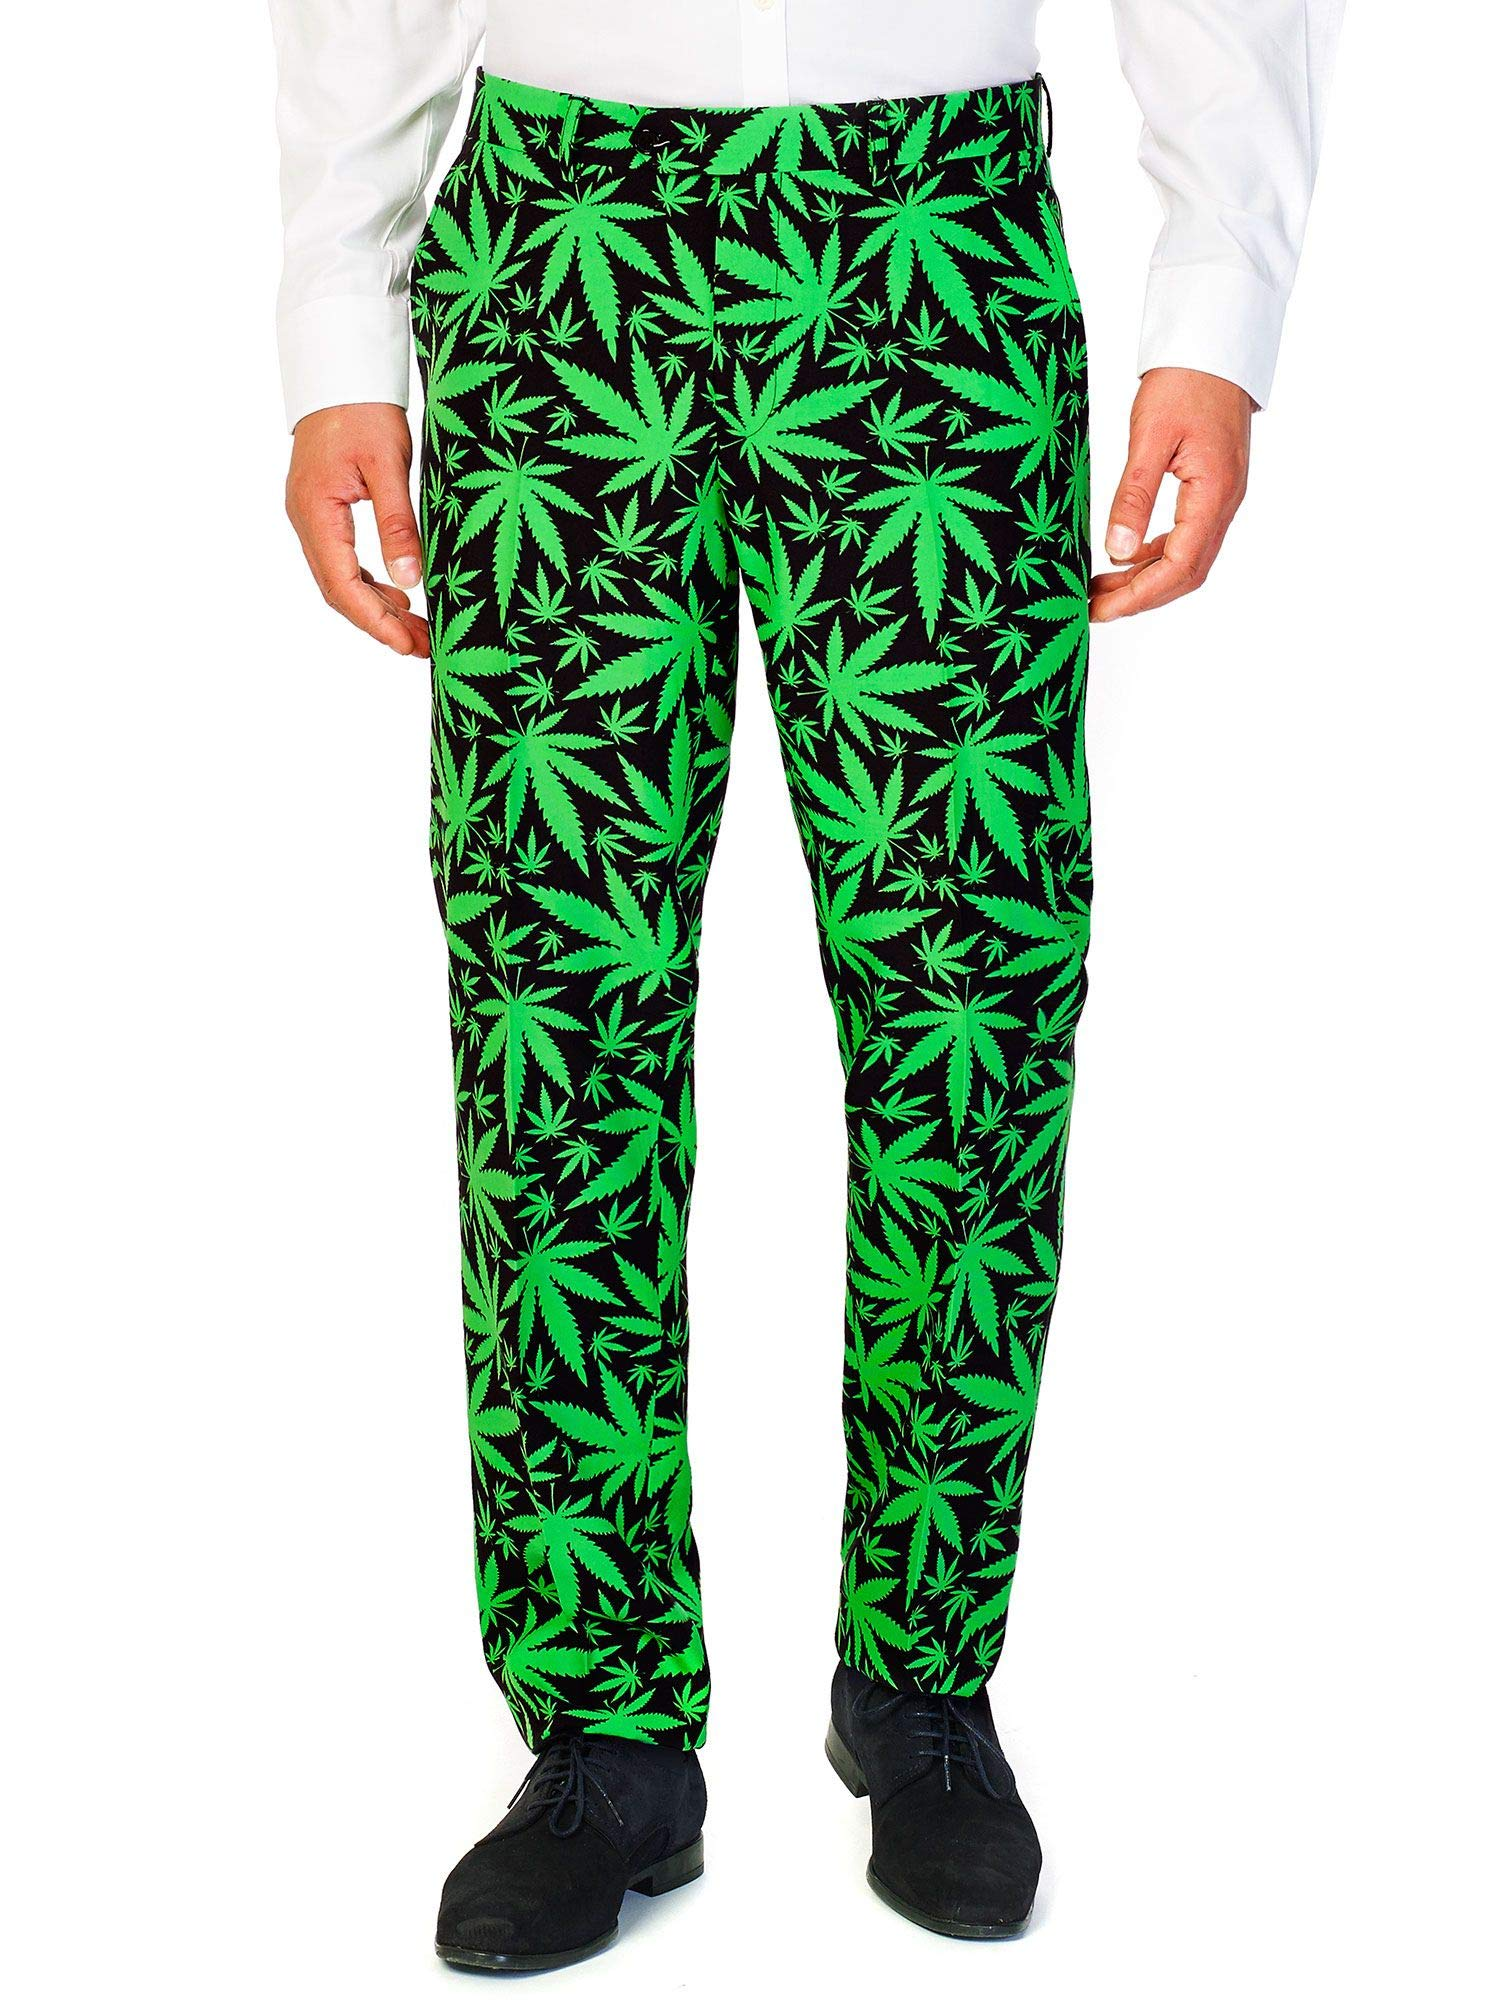 OppoSuits Men's Cannaboss Party Costume Suit, Black/Green, 52 by OppoSuits (Image #6)